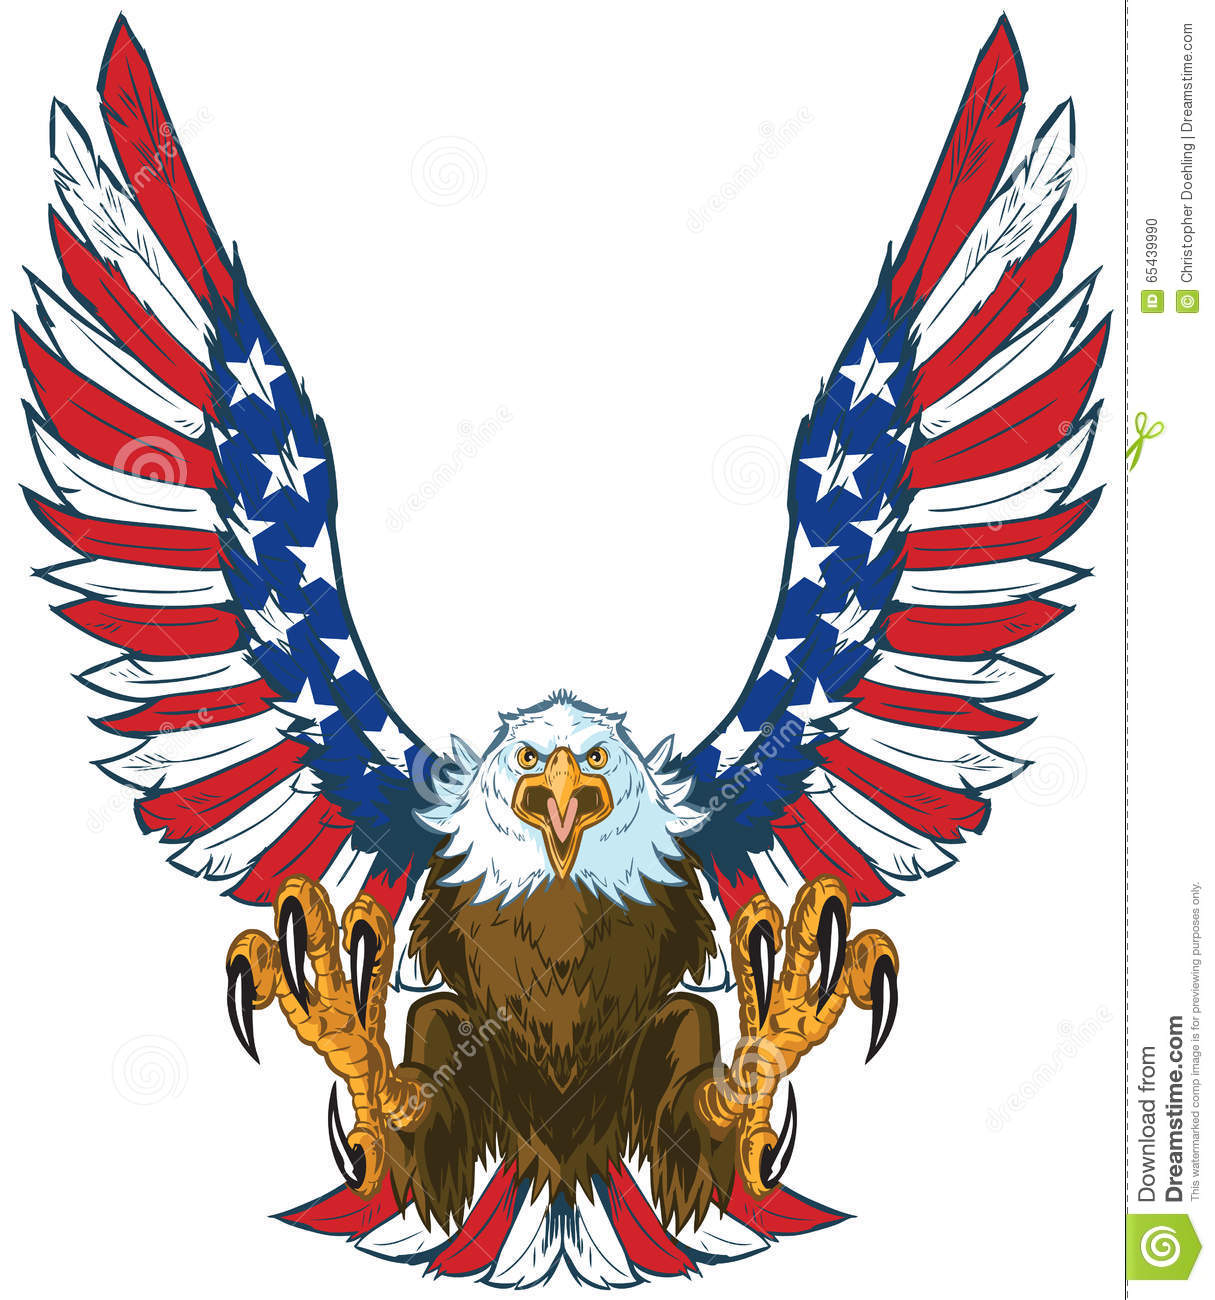 picture of eagle soaring clipart best.html